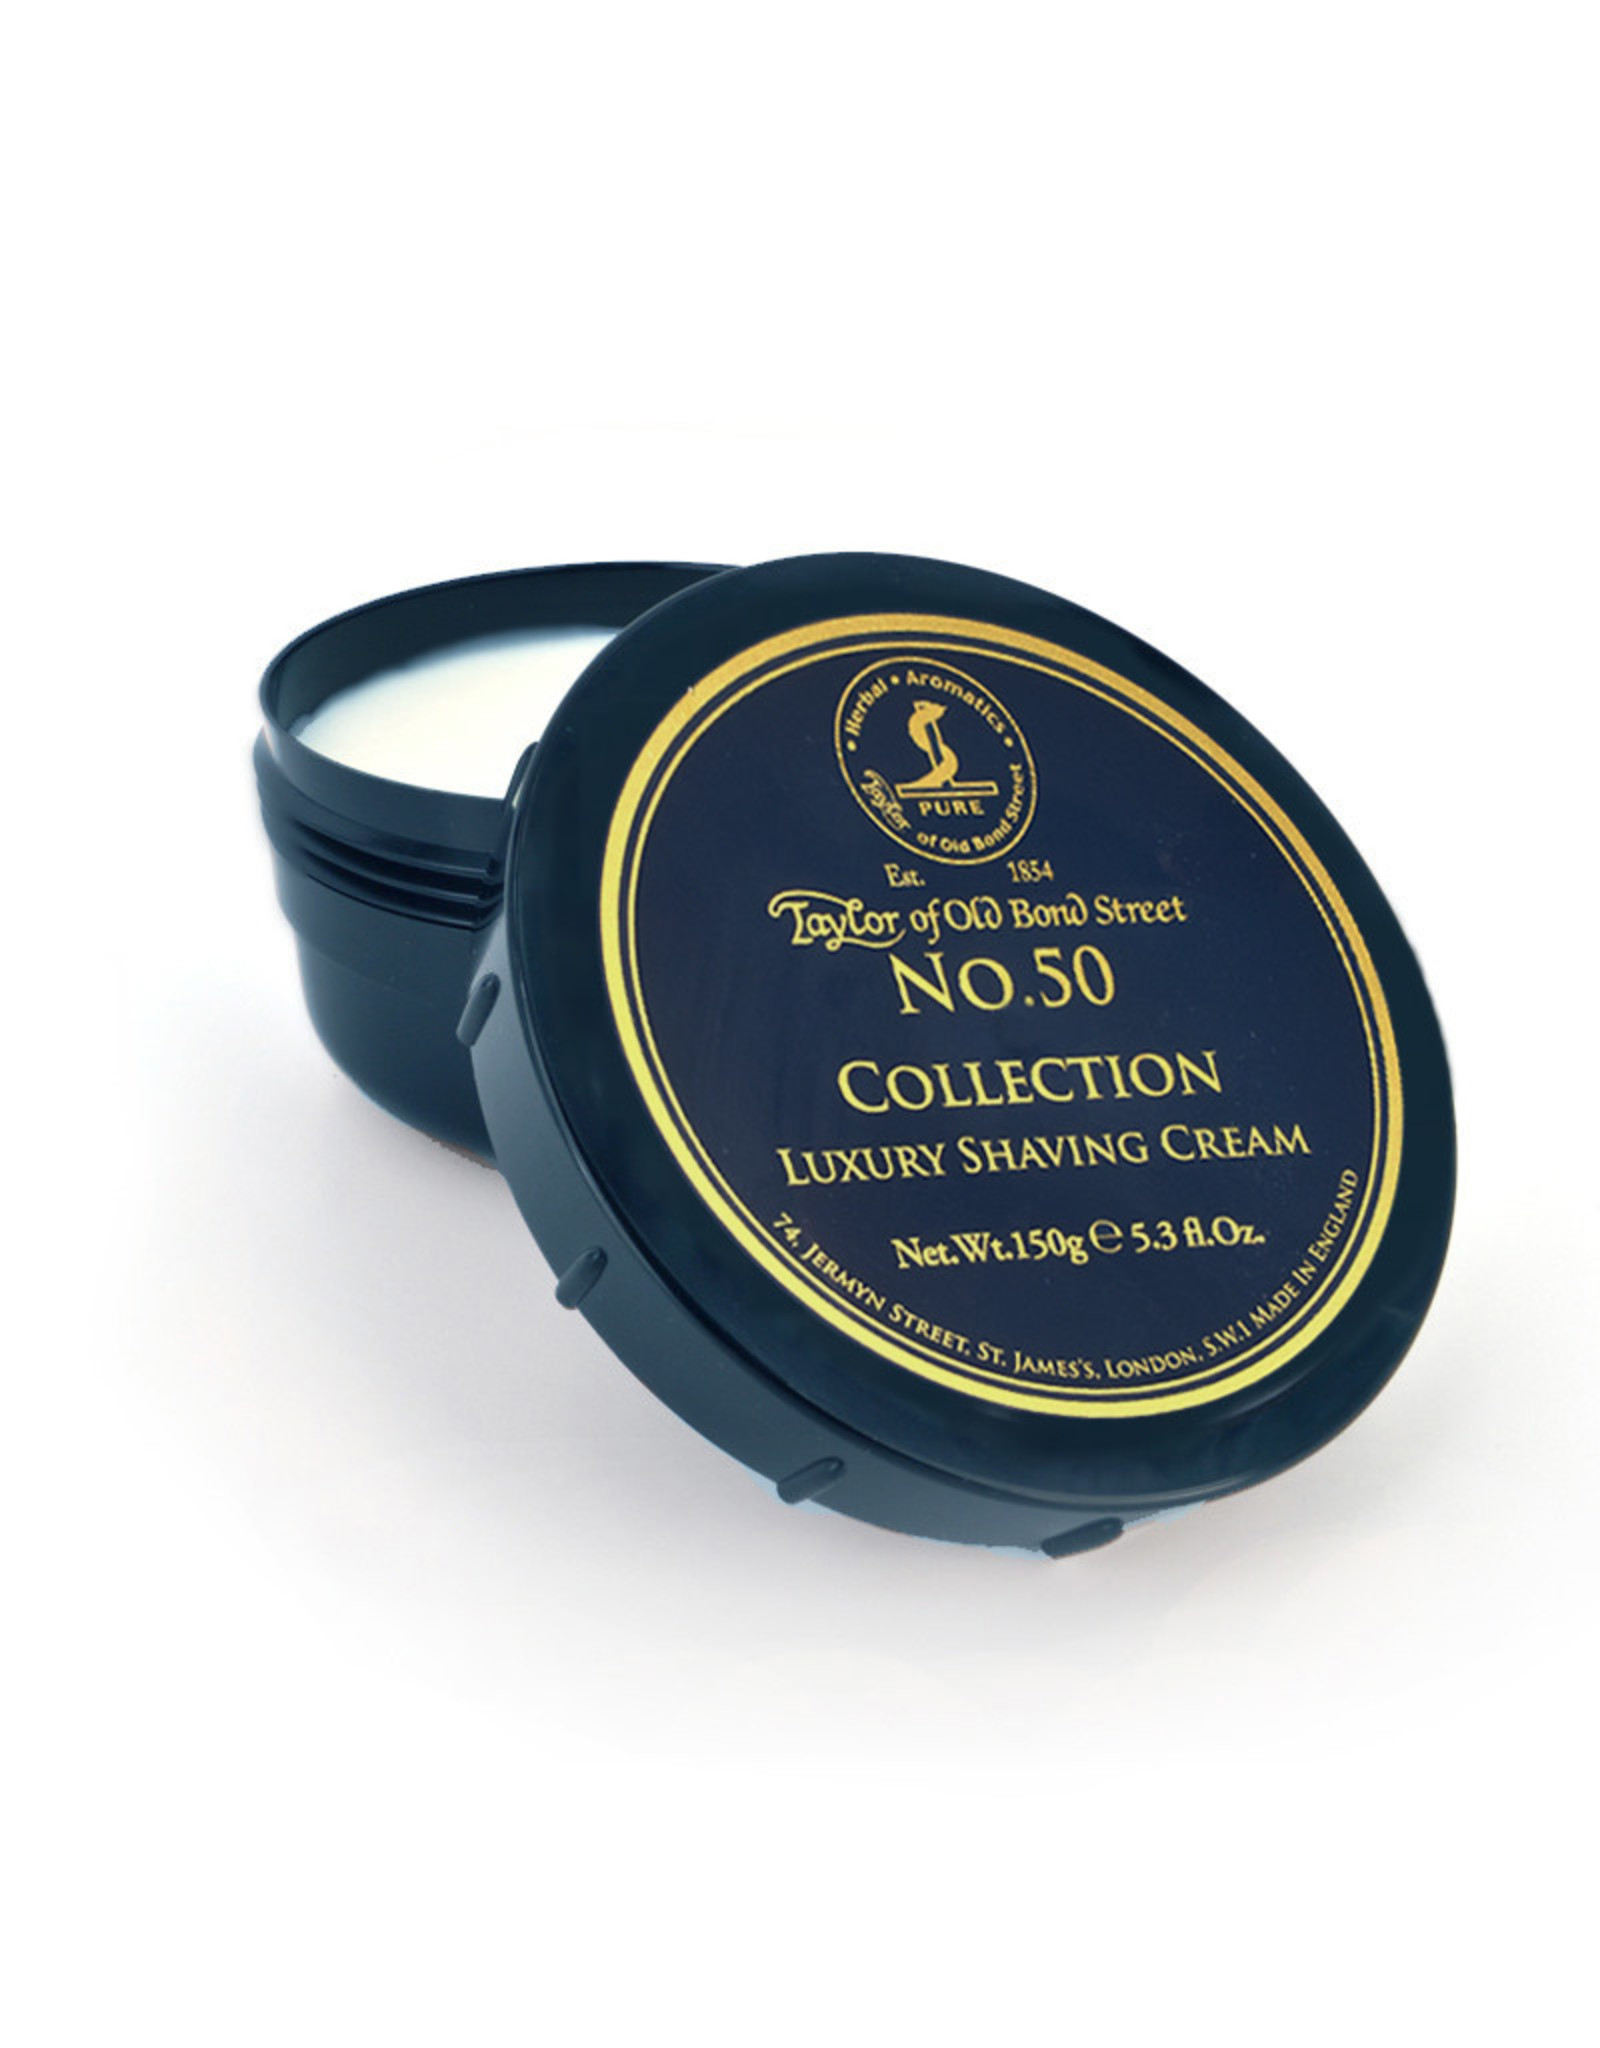 Taylor of Old Bond Street Scheercreme 150g No. 50 Collection